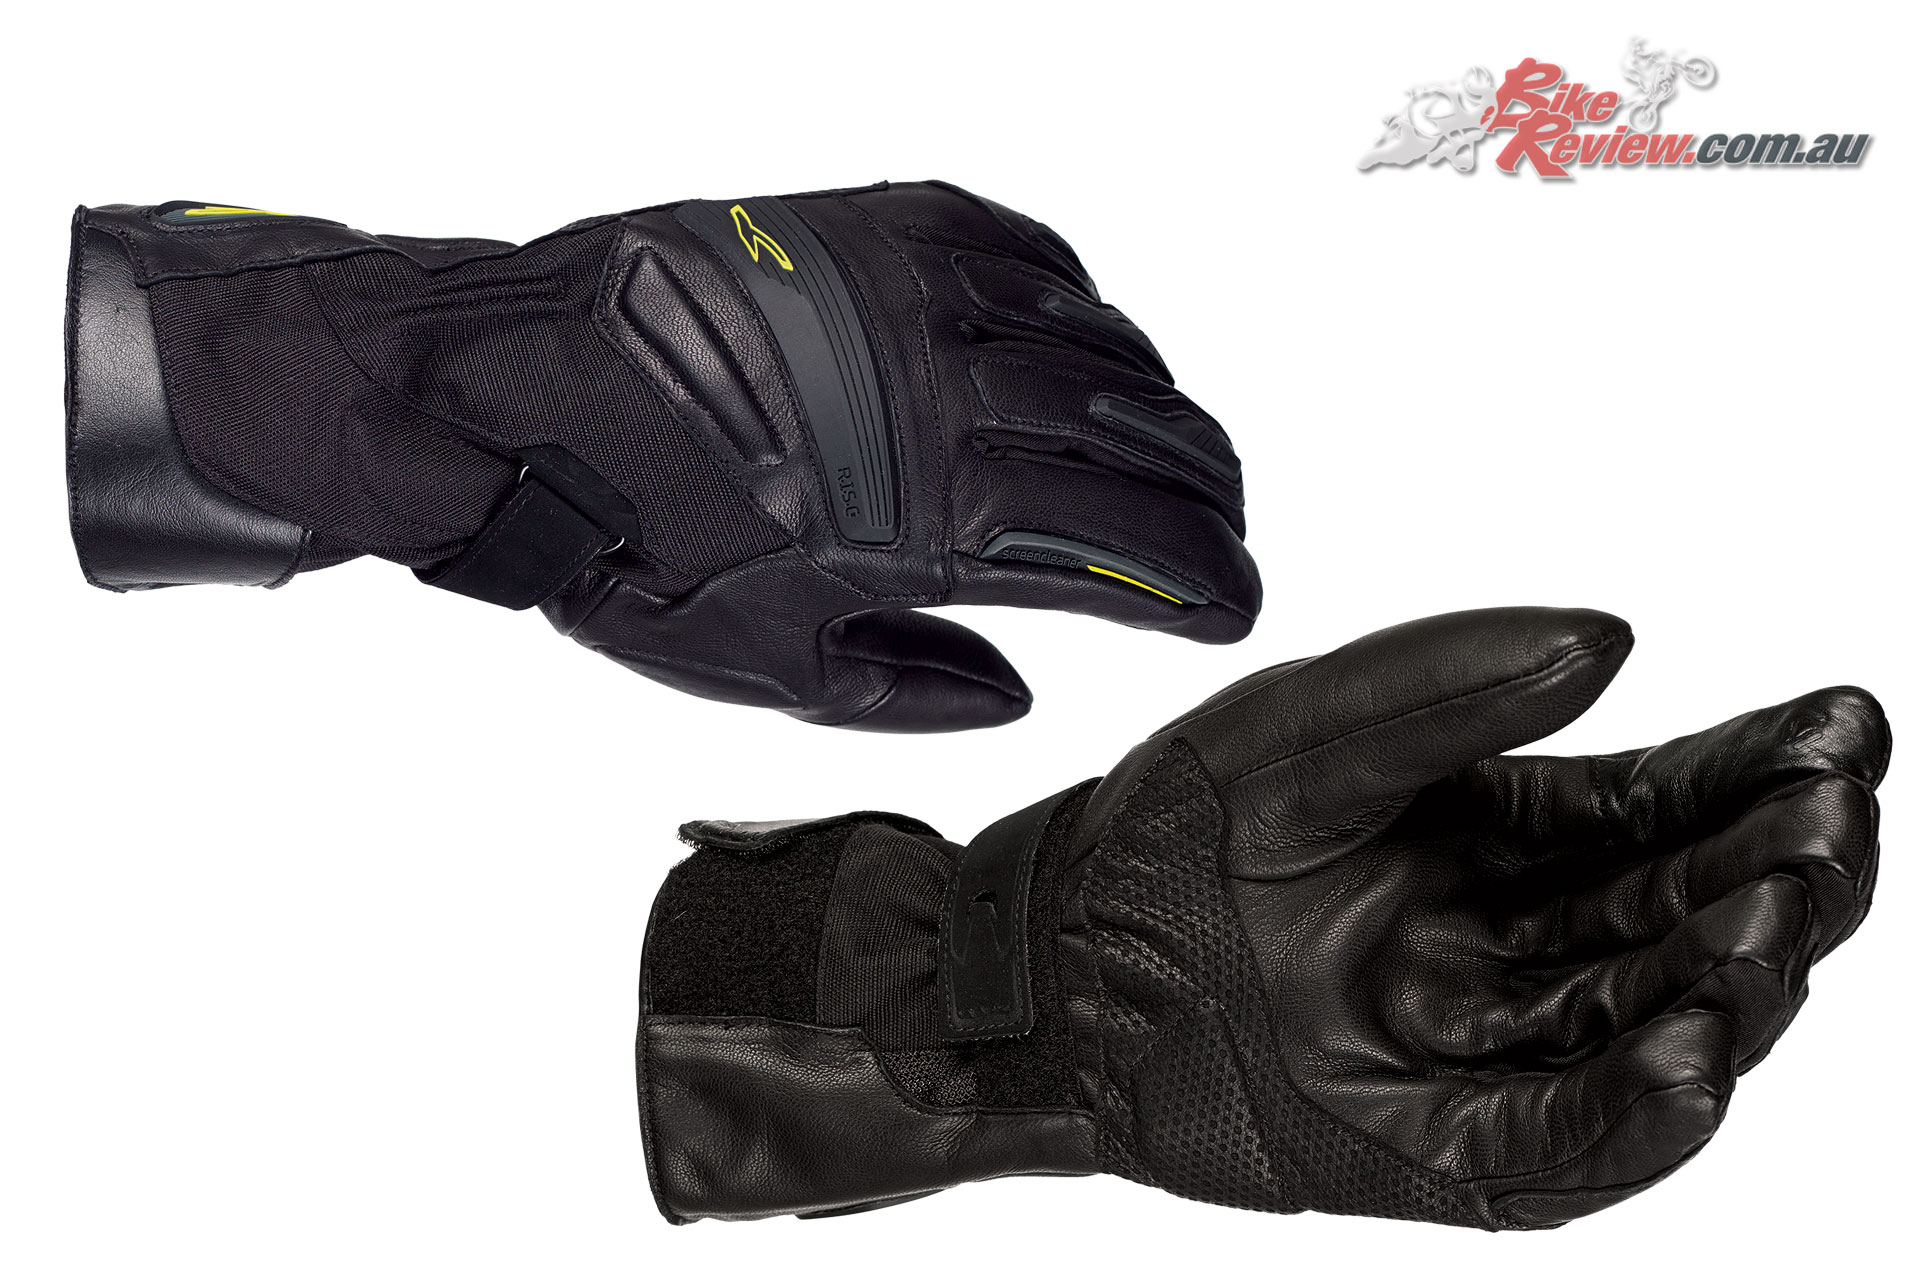 Macna Exile Gloves - $149.95 RRP